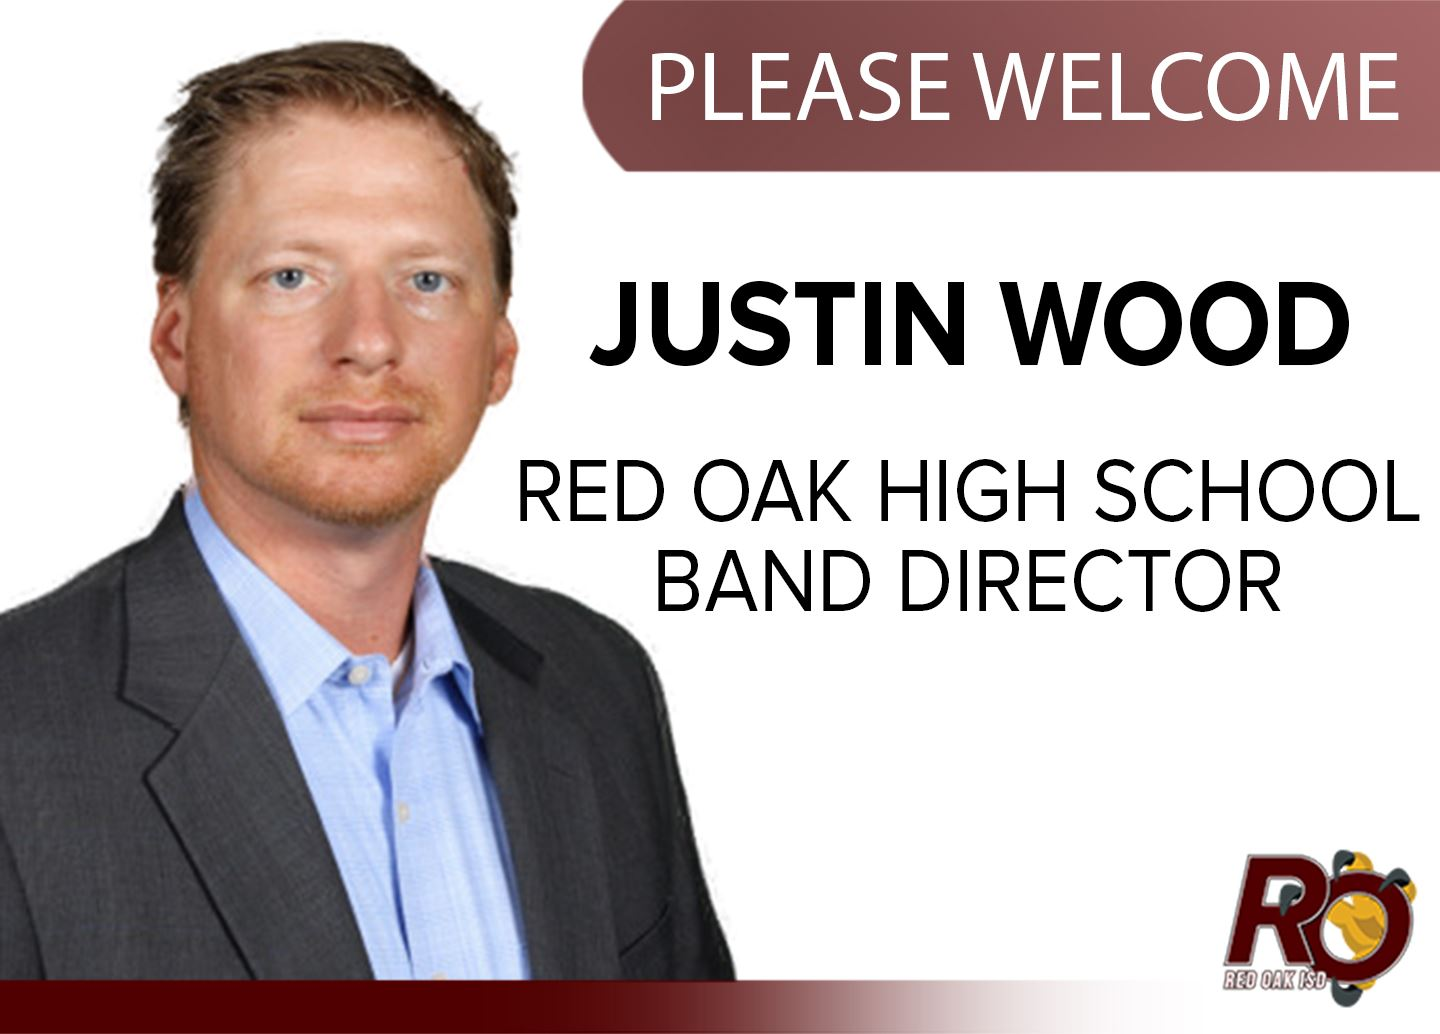 Welcome to Justin Wood, new band director for Red Oak High School